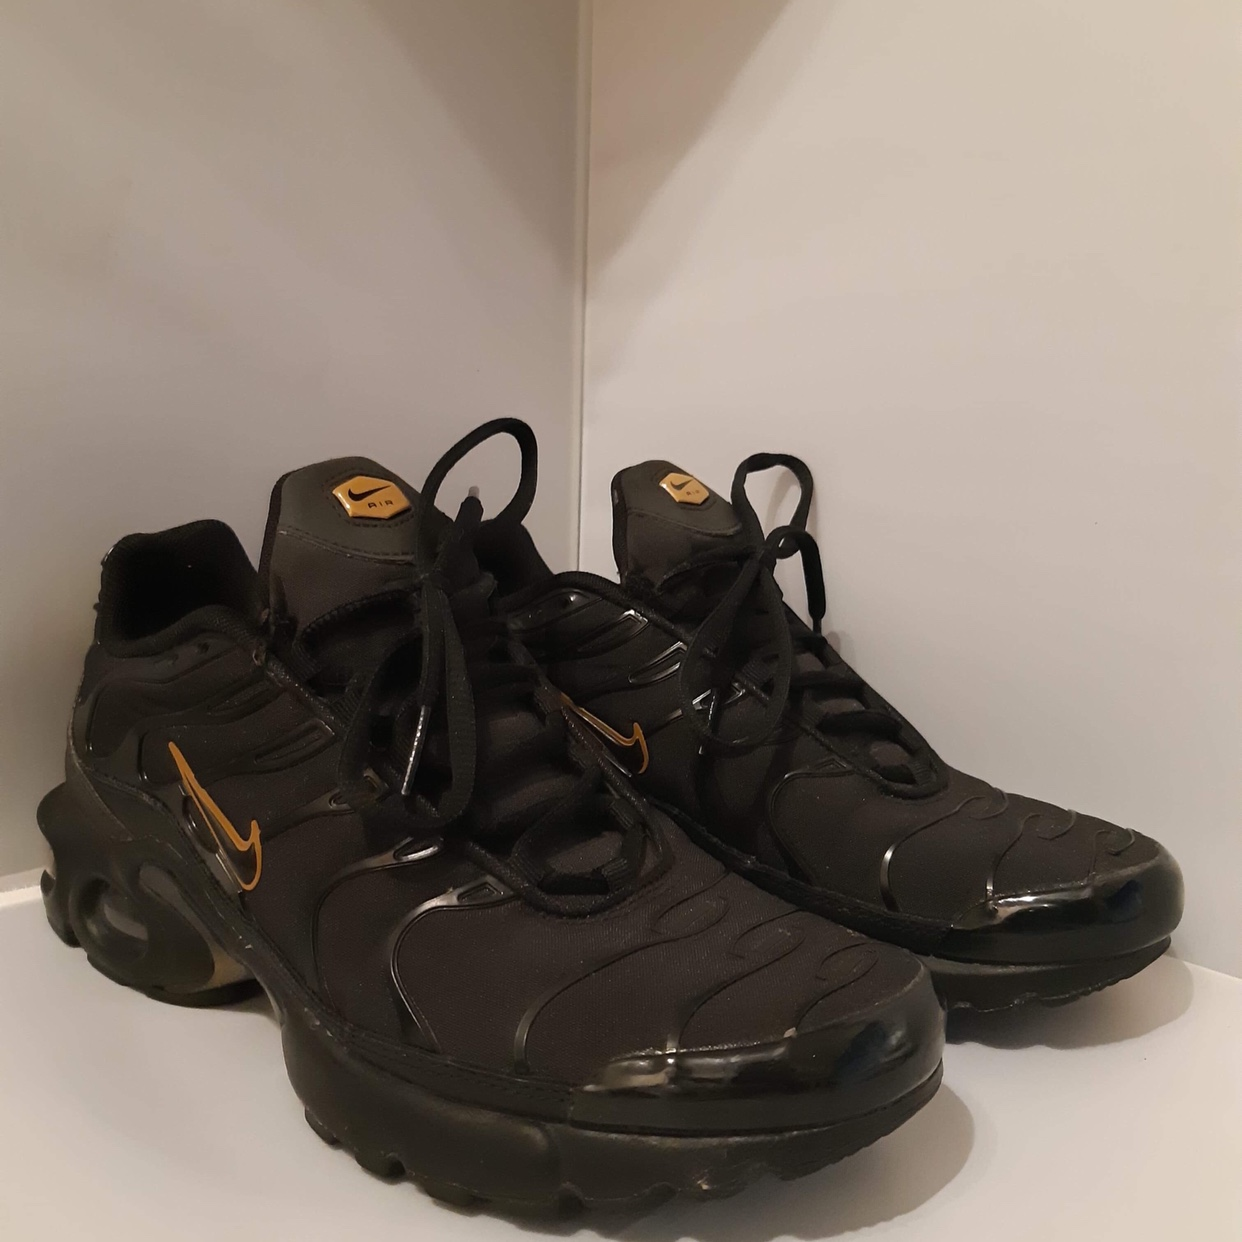 separation shoes 8fc29 ac64a Nike air max plus GS Tn's black metallic gold... - Depop